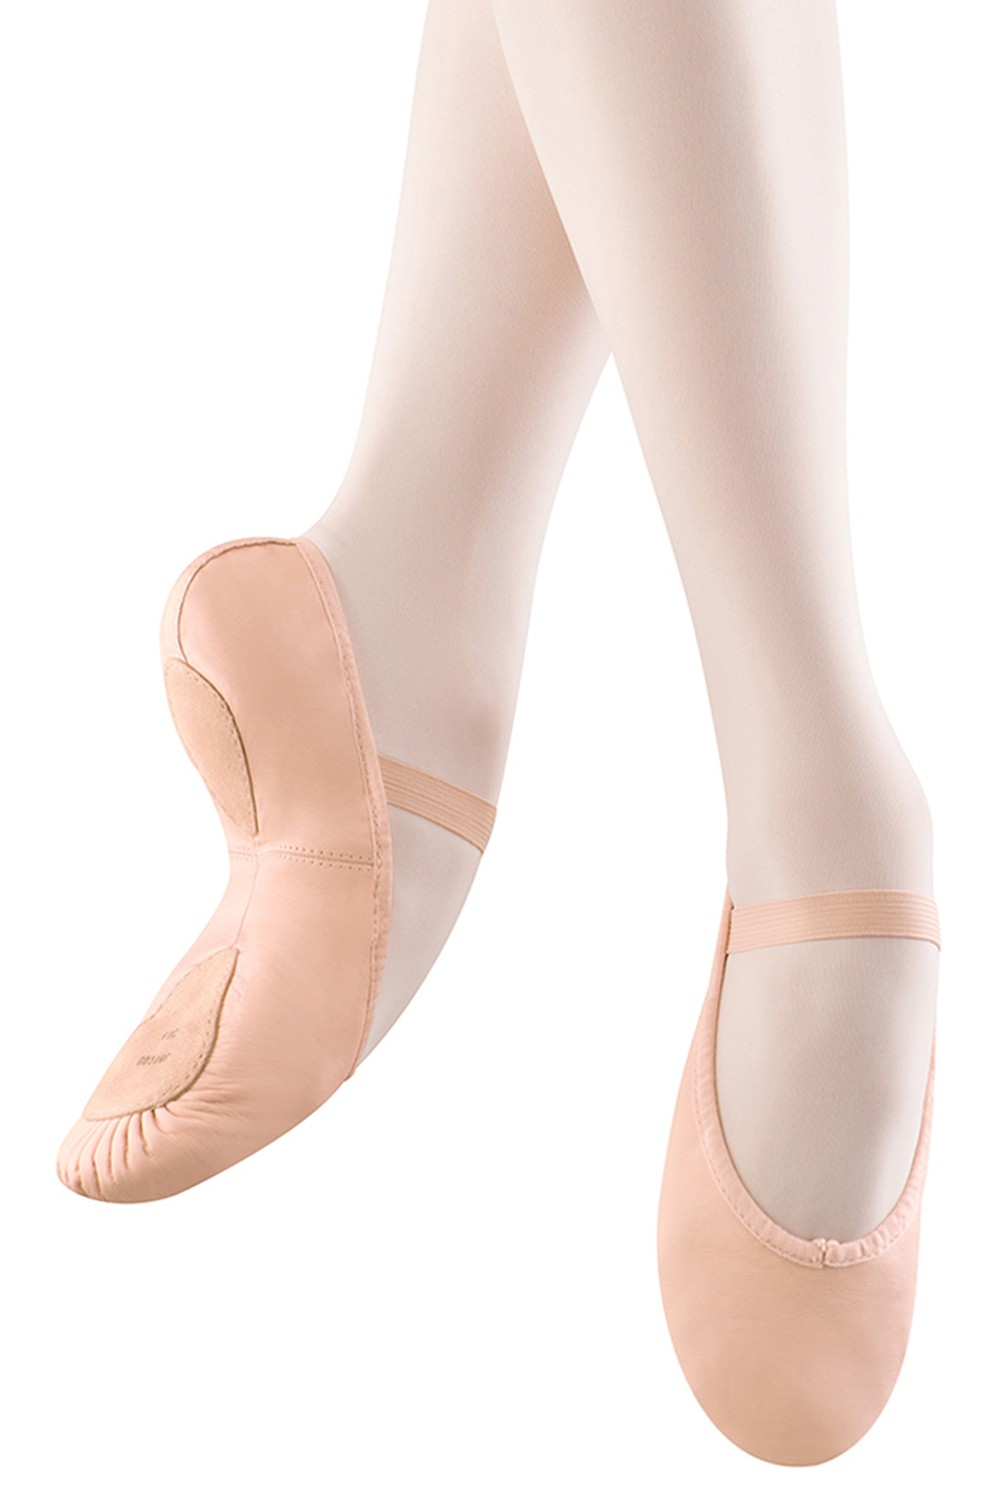 Dansoft Bi-semelles - Fille Girl's Ballet Shoes